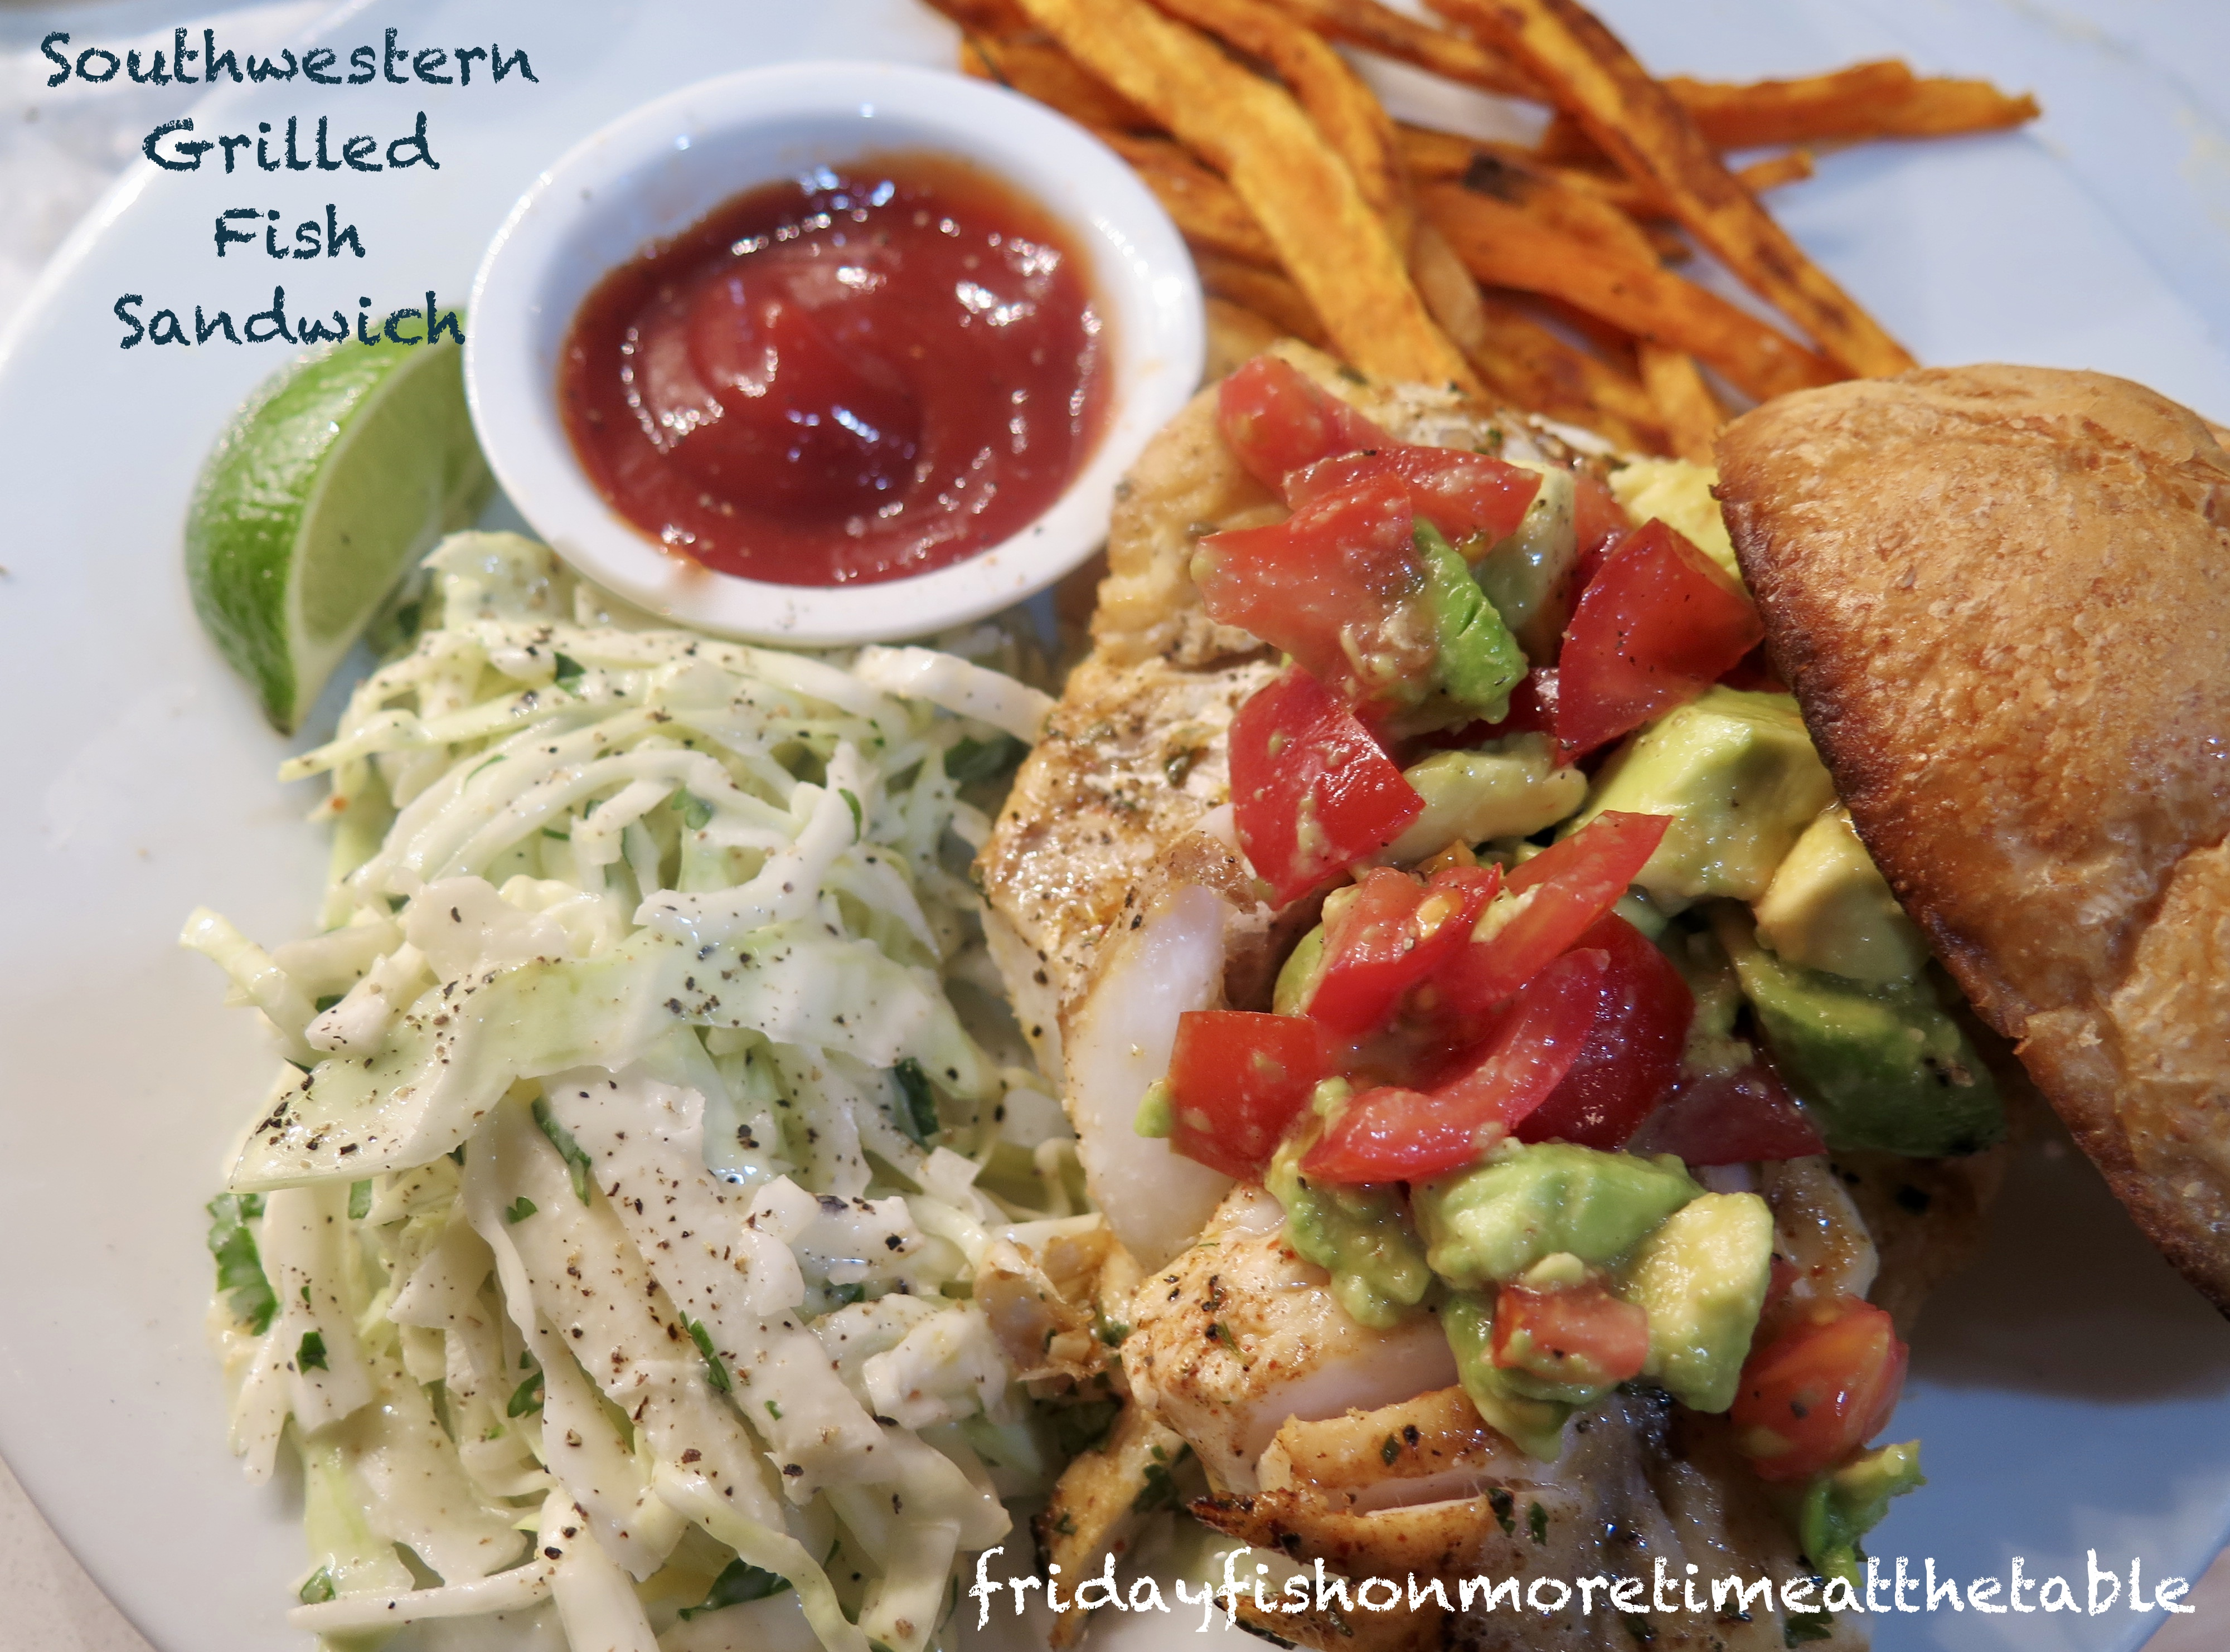 Grilled Striped Bass Recipes Barefoot Contessa friday fish: southwestern grilled fish sandwiches with green